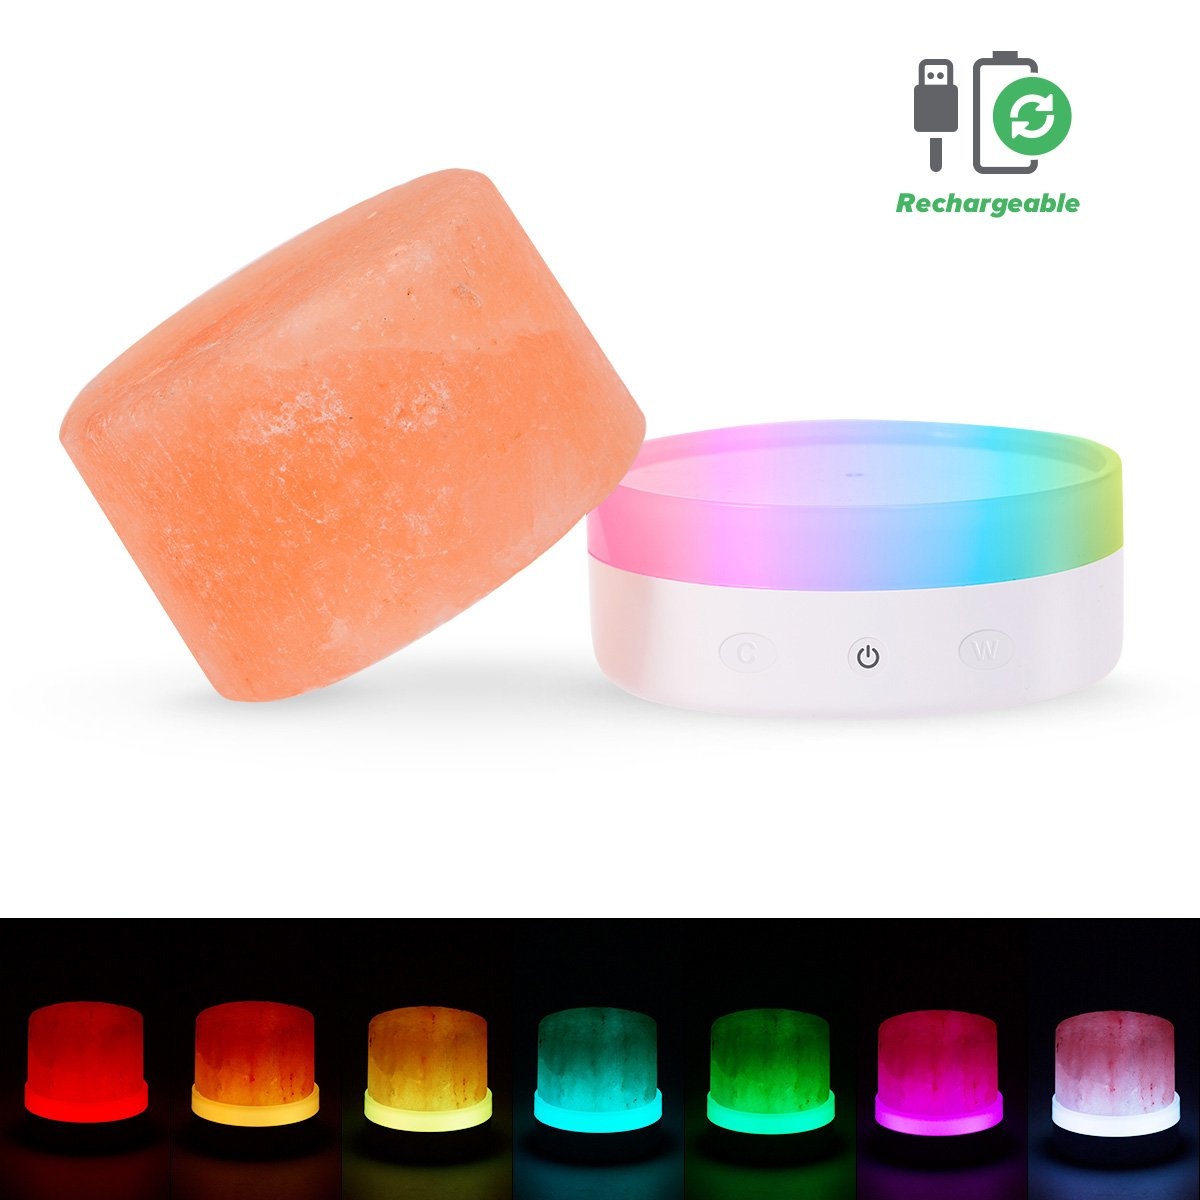 Multicolor Himalayan Salt Lamp, JandCase Dimmable Natural Rock Salt lamp, Night Light for Sleep, Color Changing Lights for Kids Room Home Decor, Touch Dimmer Switch, USB Powered